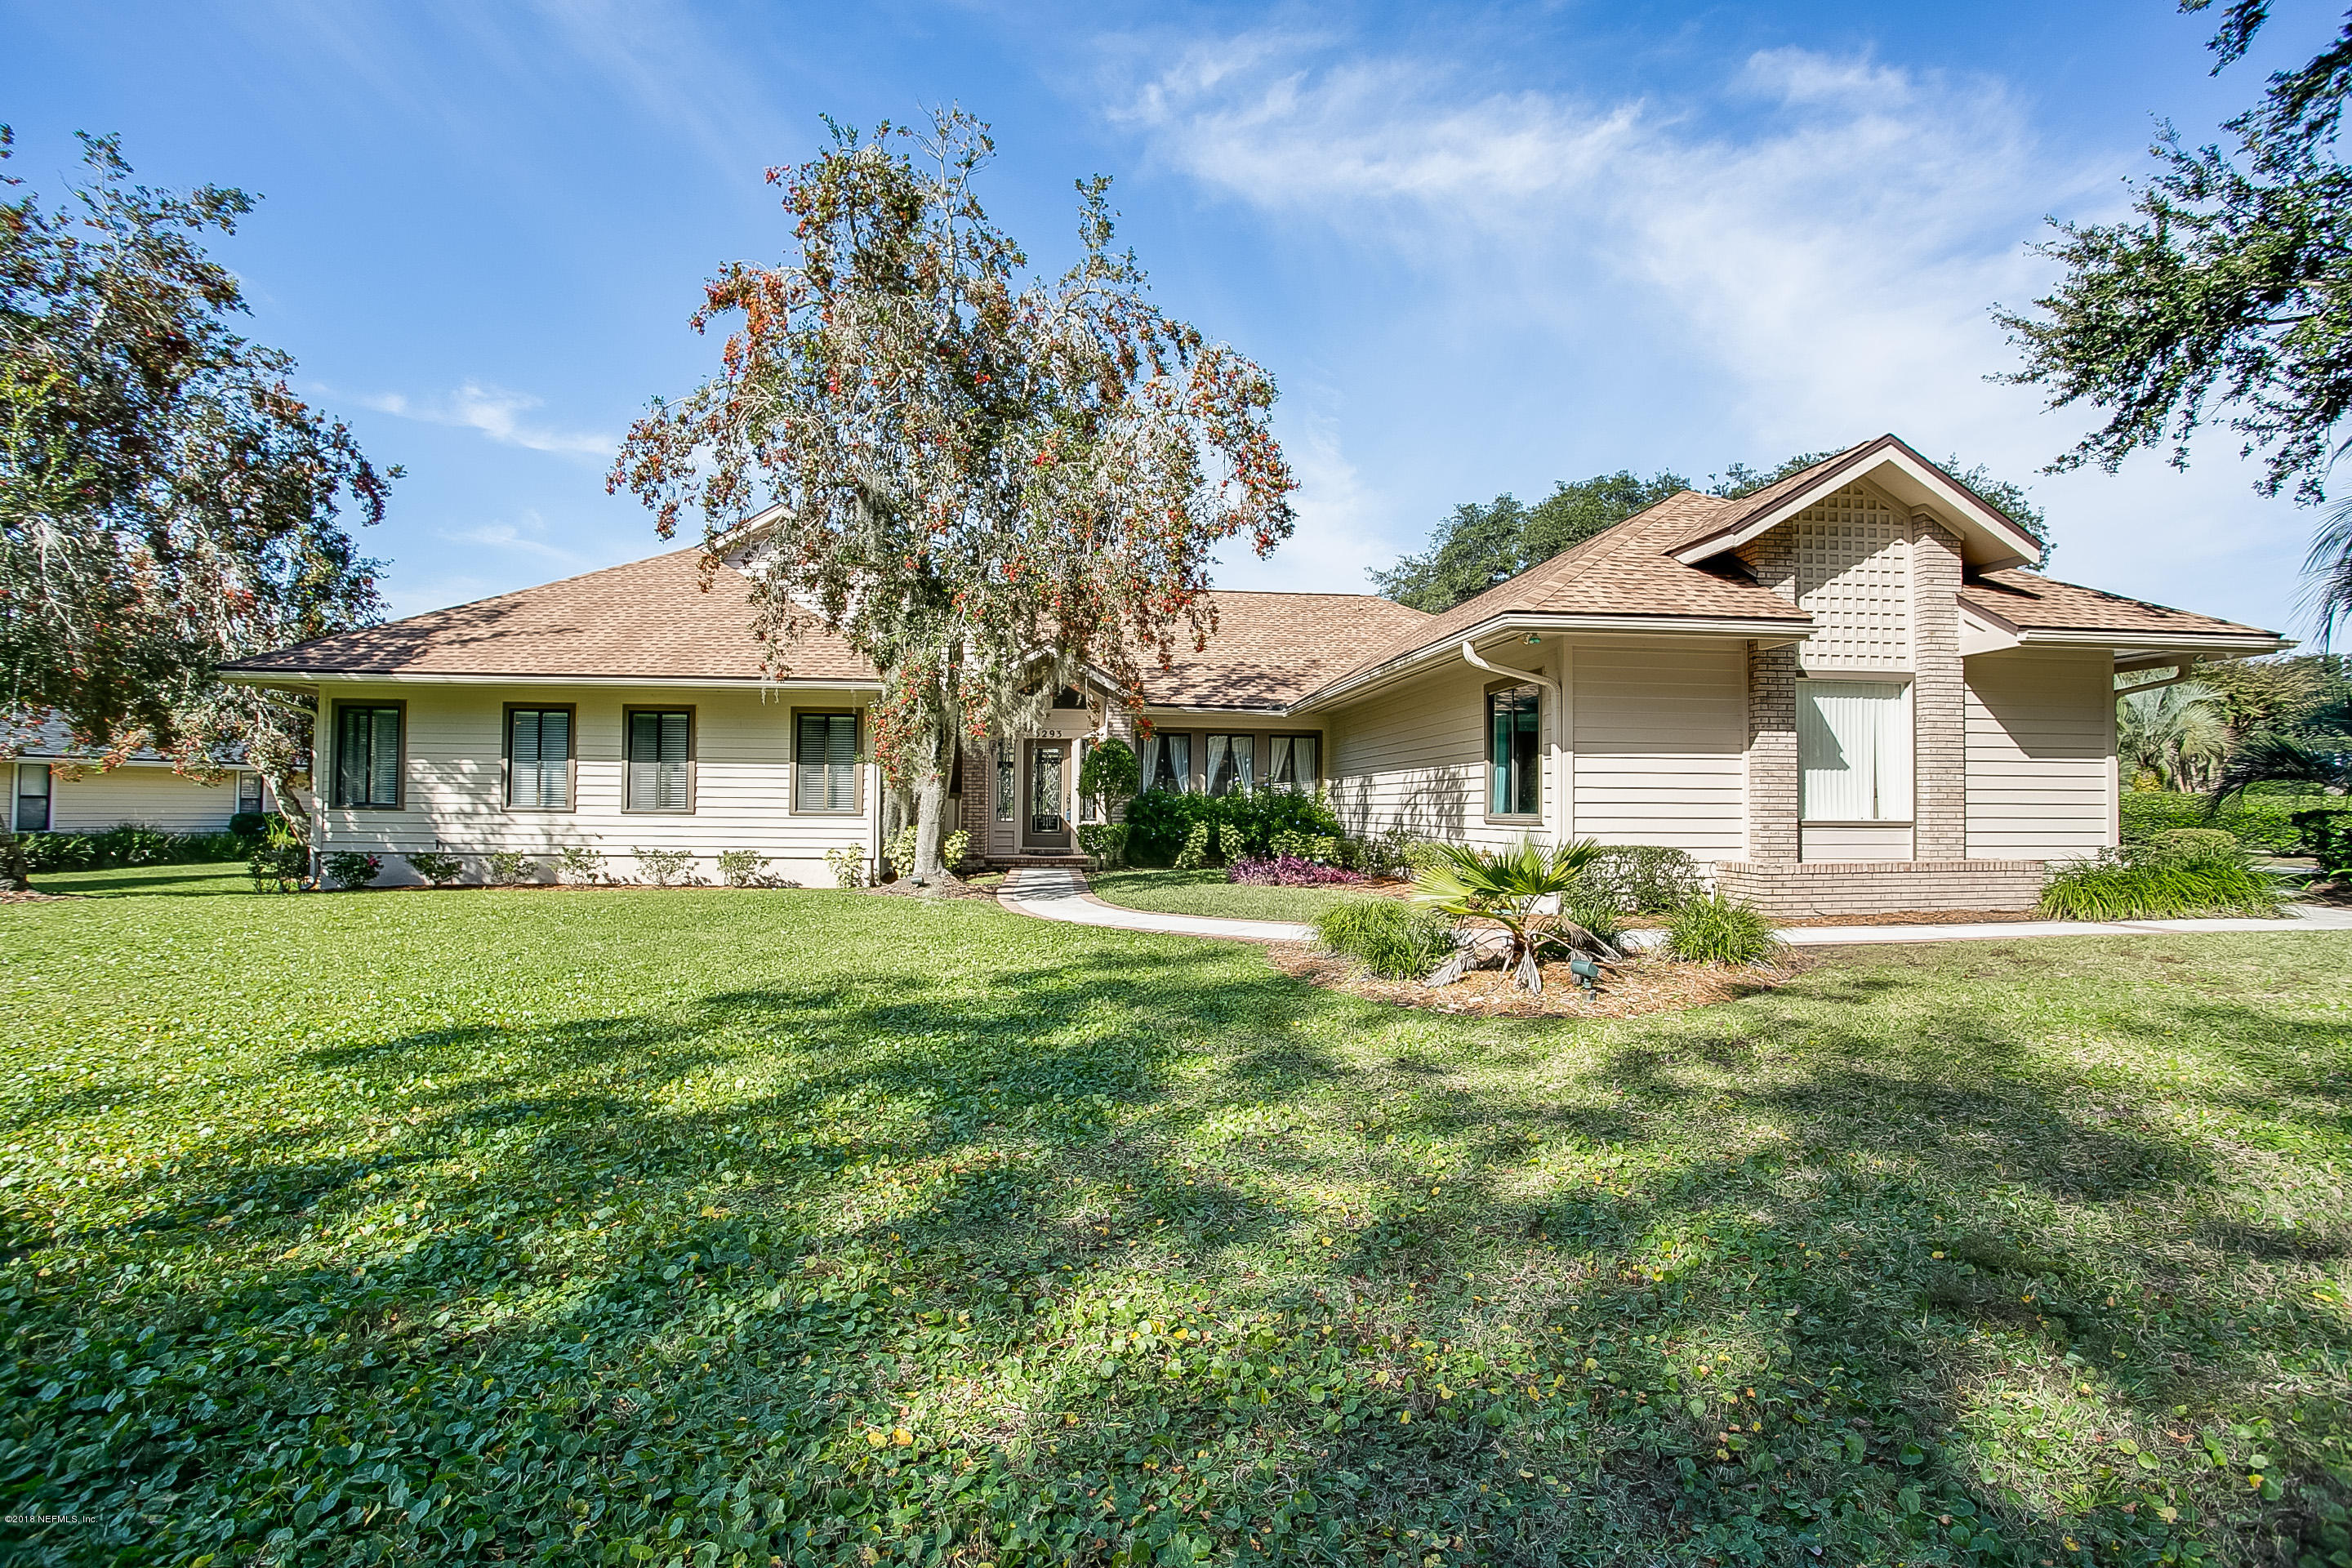 3293 OLD BARN, PONTE VEDRA BEACH, FLORIDA 32082, 4 Bedrooms Bedrooms, ,3 BathroomsBathrooms,Residential - single family,For sale,OLD BARN,969558